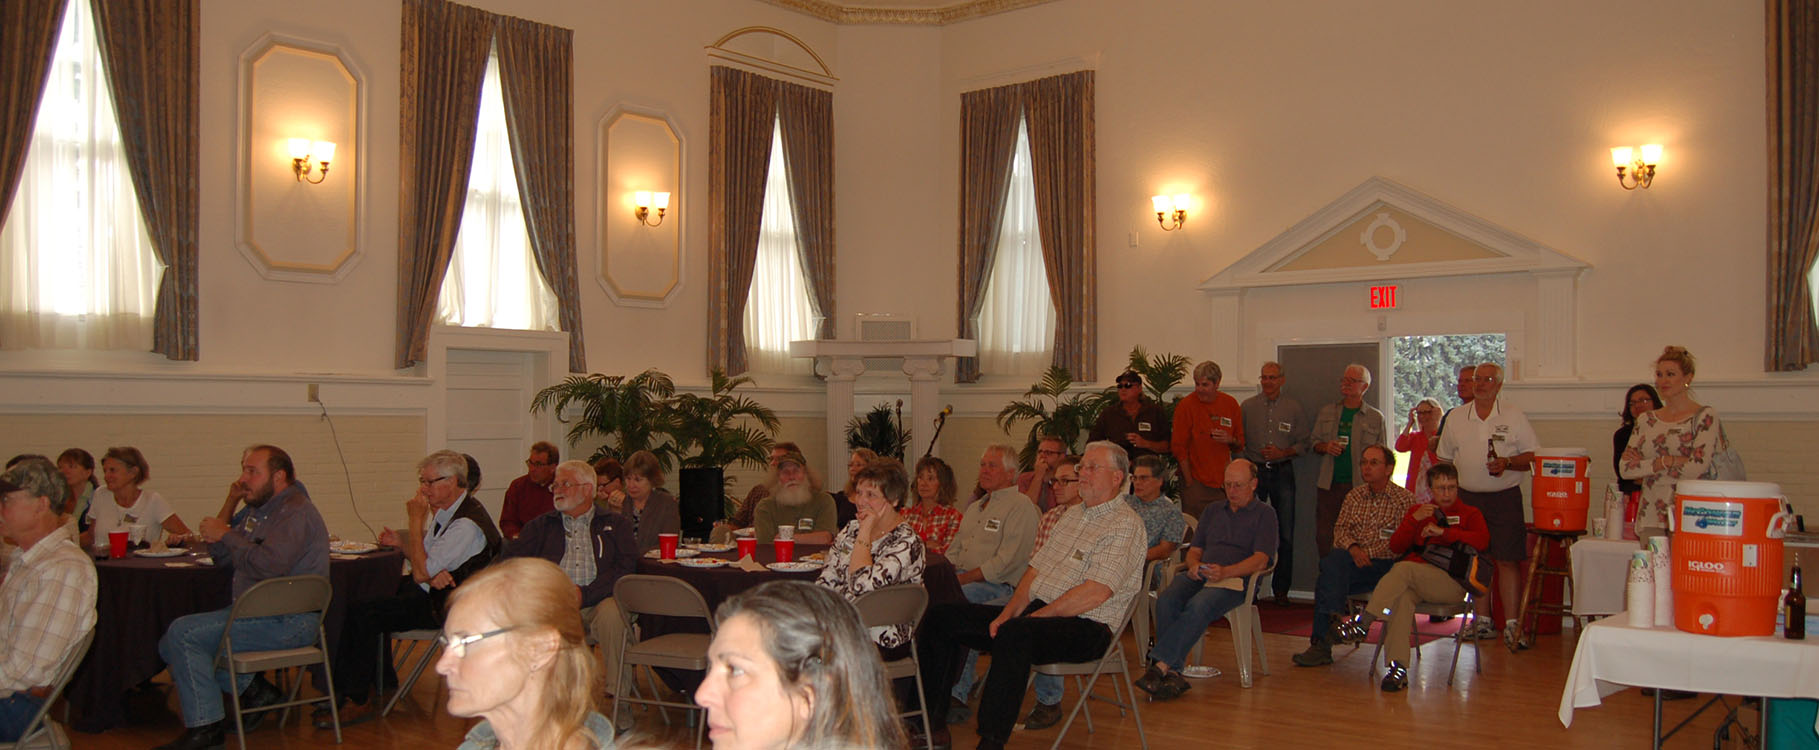 Crowd shot of Vital Ground's 25th anniversary celebration at Heritage Hall, Fort Missoula